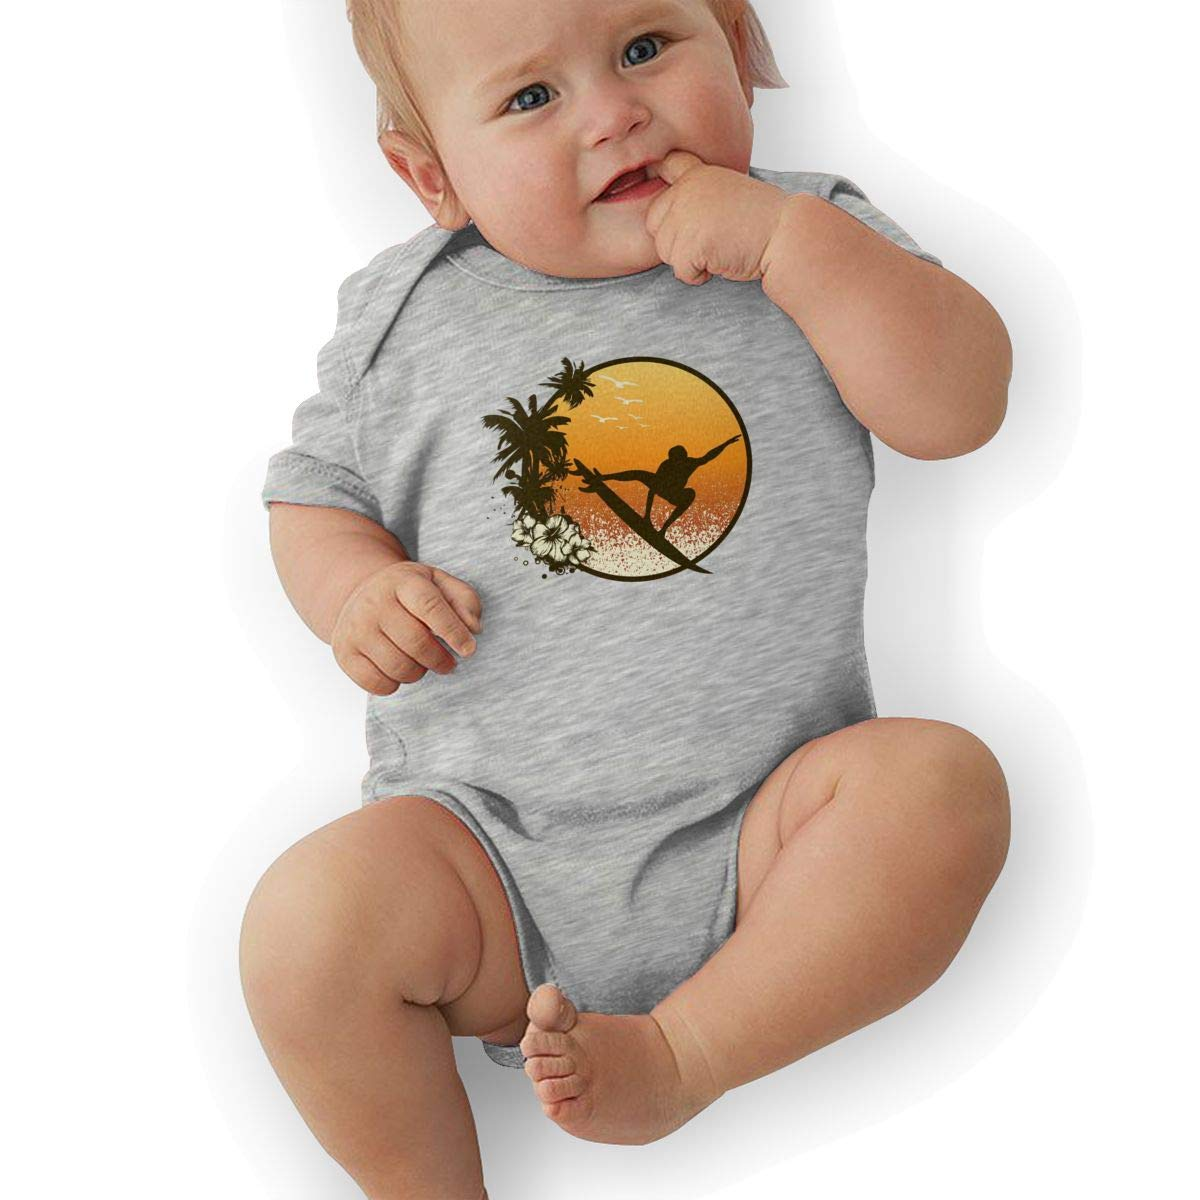 Hawaii Cool Surfer Silhouette Baby Boys Girls Jumpsuits Short Sleeve Romper Bodysuit Bodysuit Jumpsuit Outfits Gray